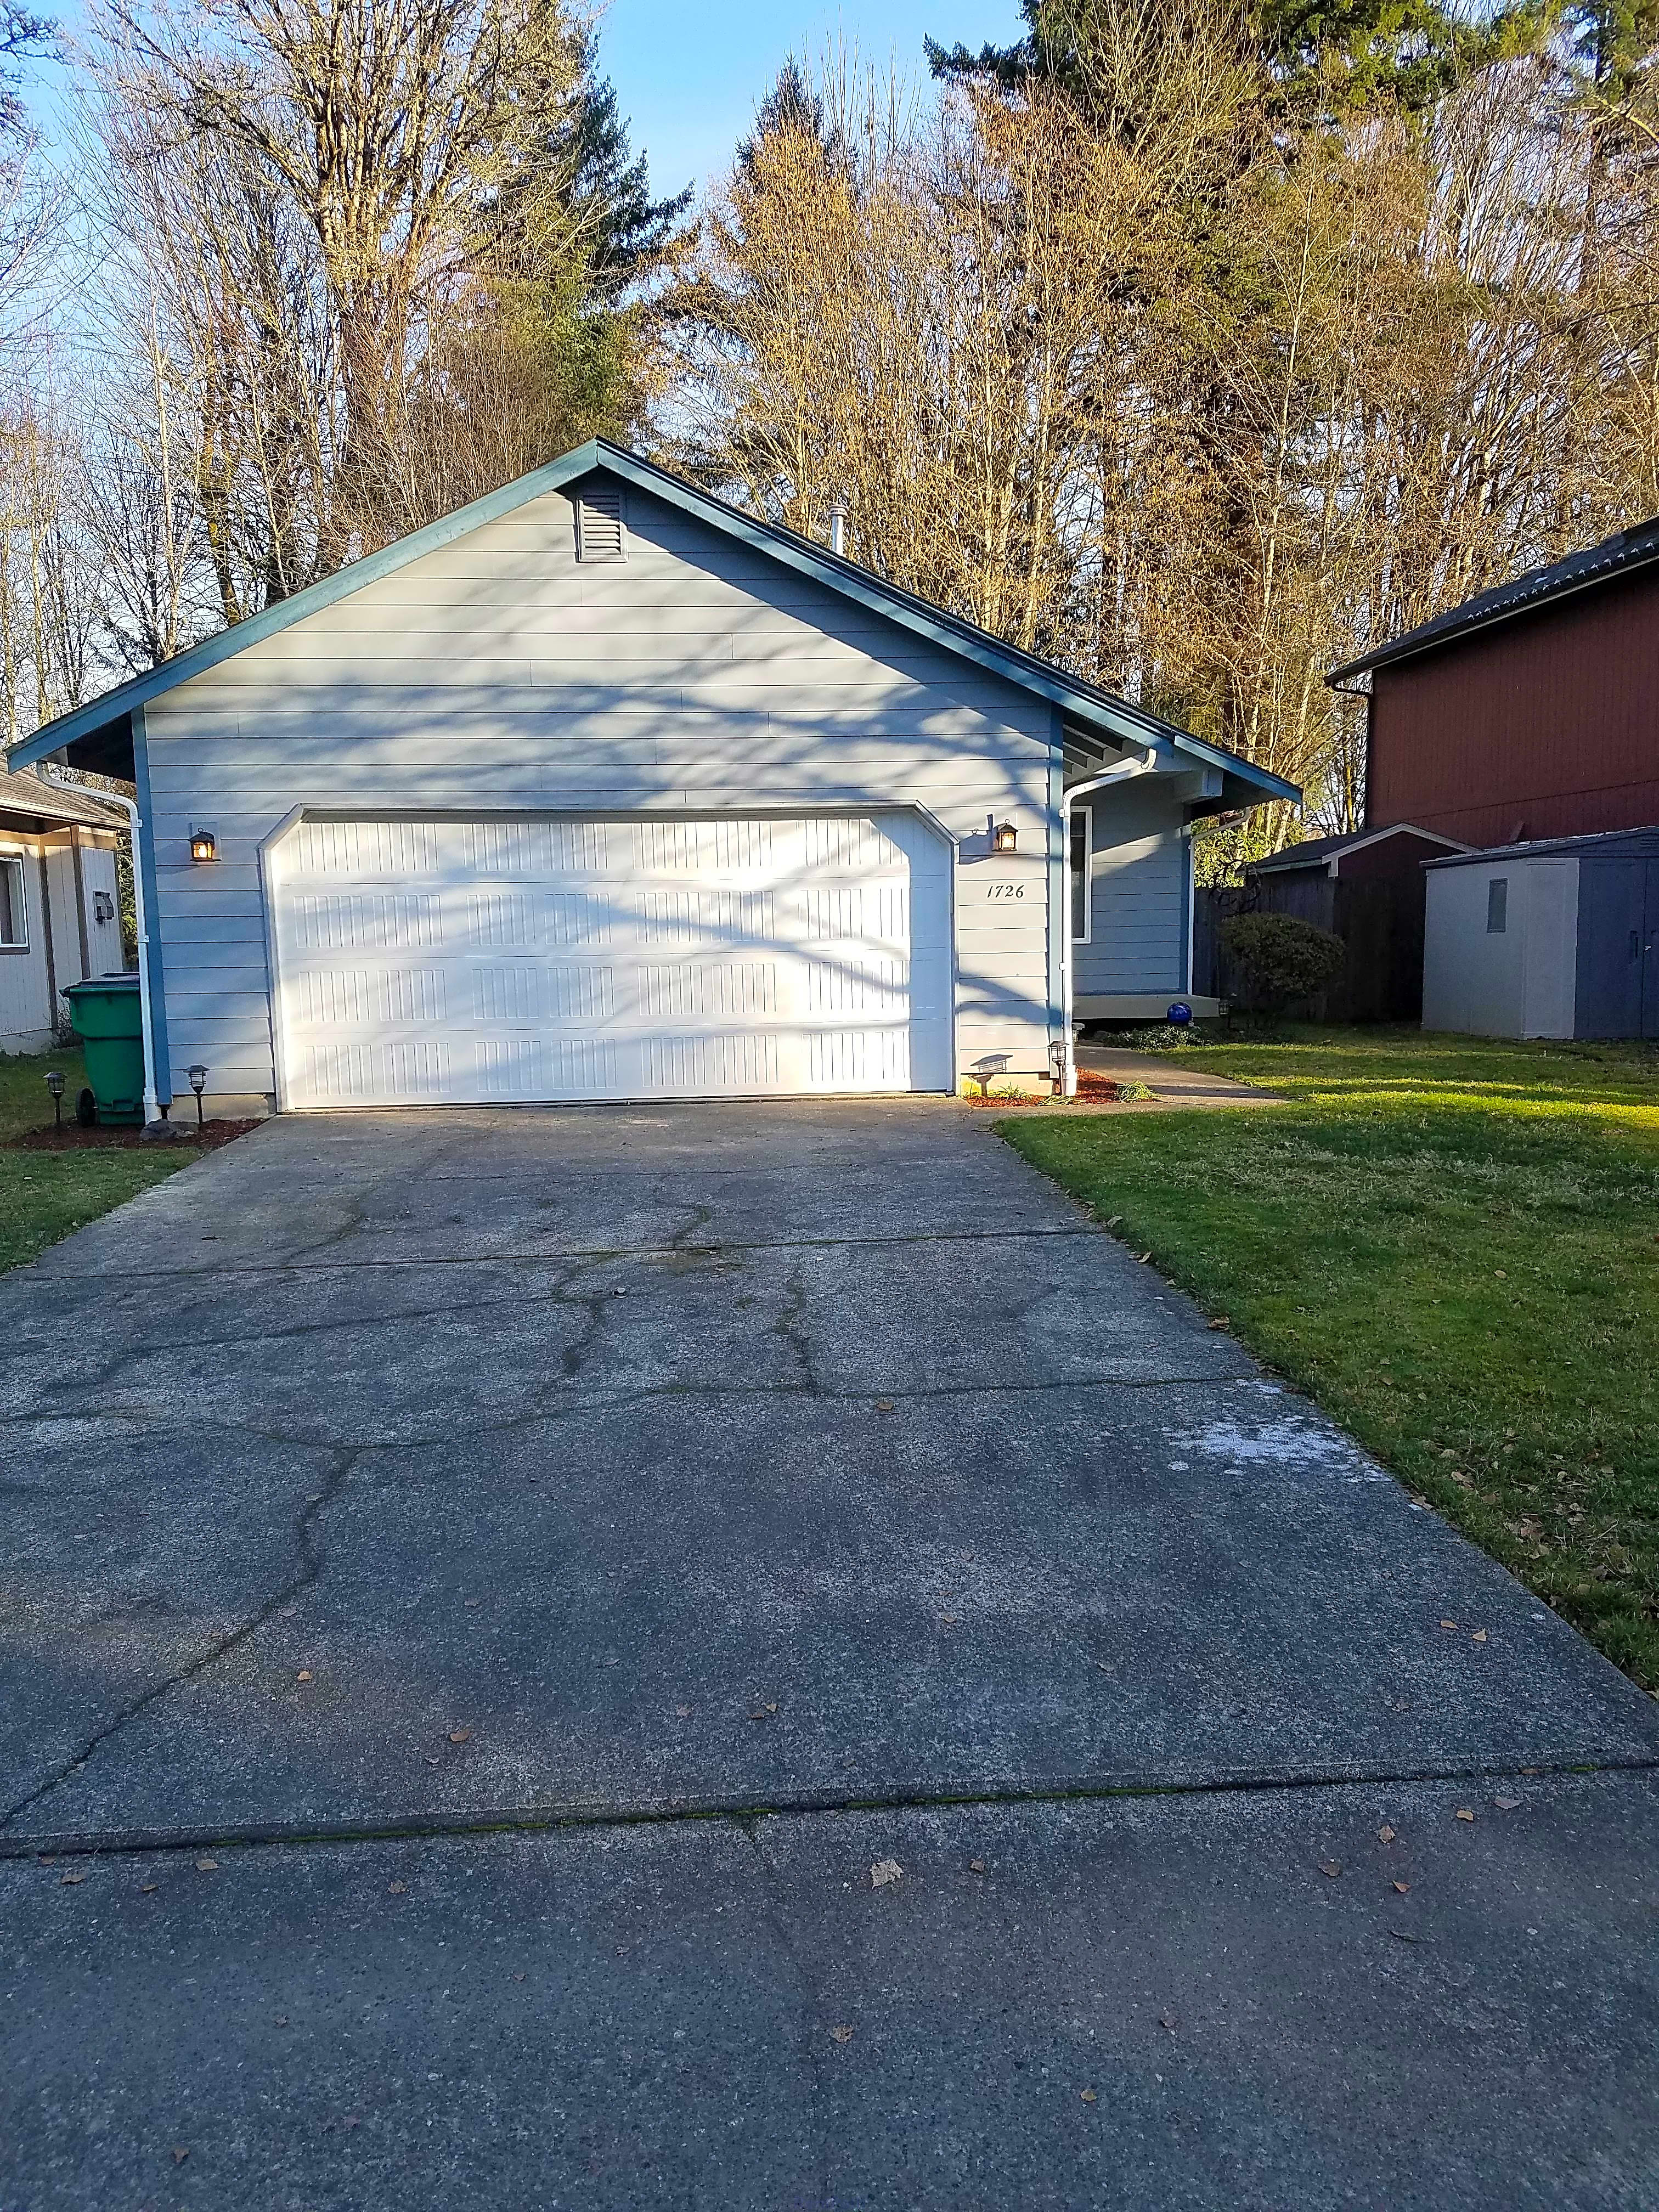 Adorable 3 bedroom, 2 bath rambler in Olympia